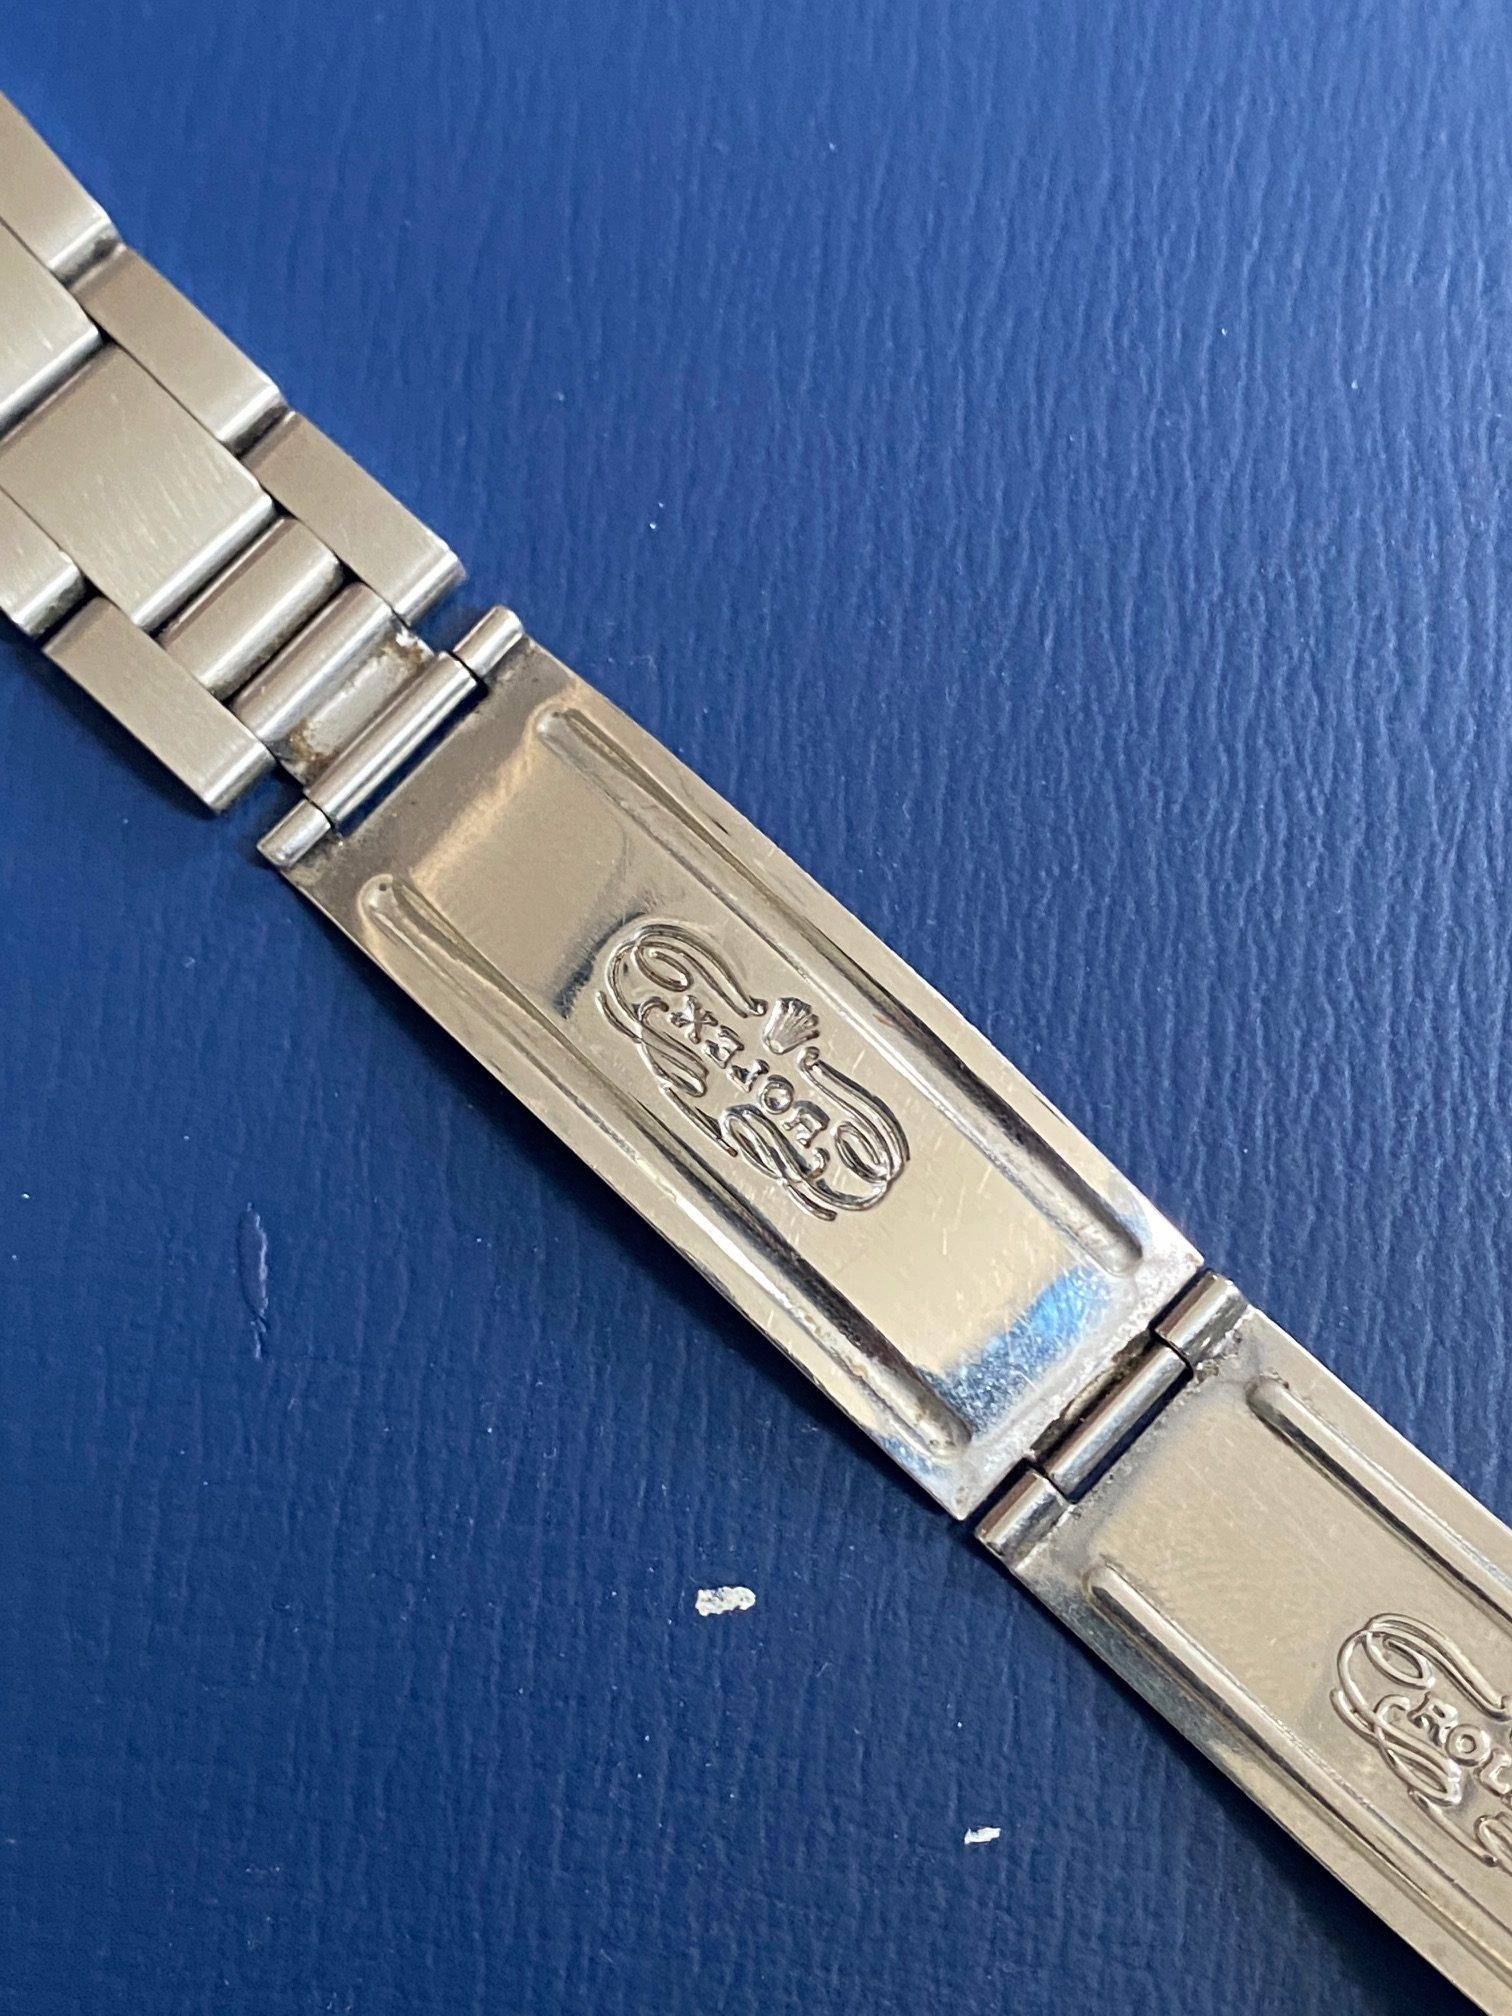 ROLEX OYSTER PERPETUAL DATE ENGINE TURNED BEZEL-4